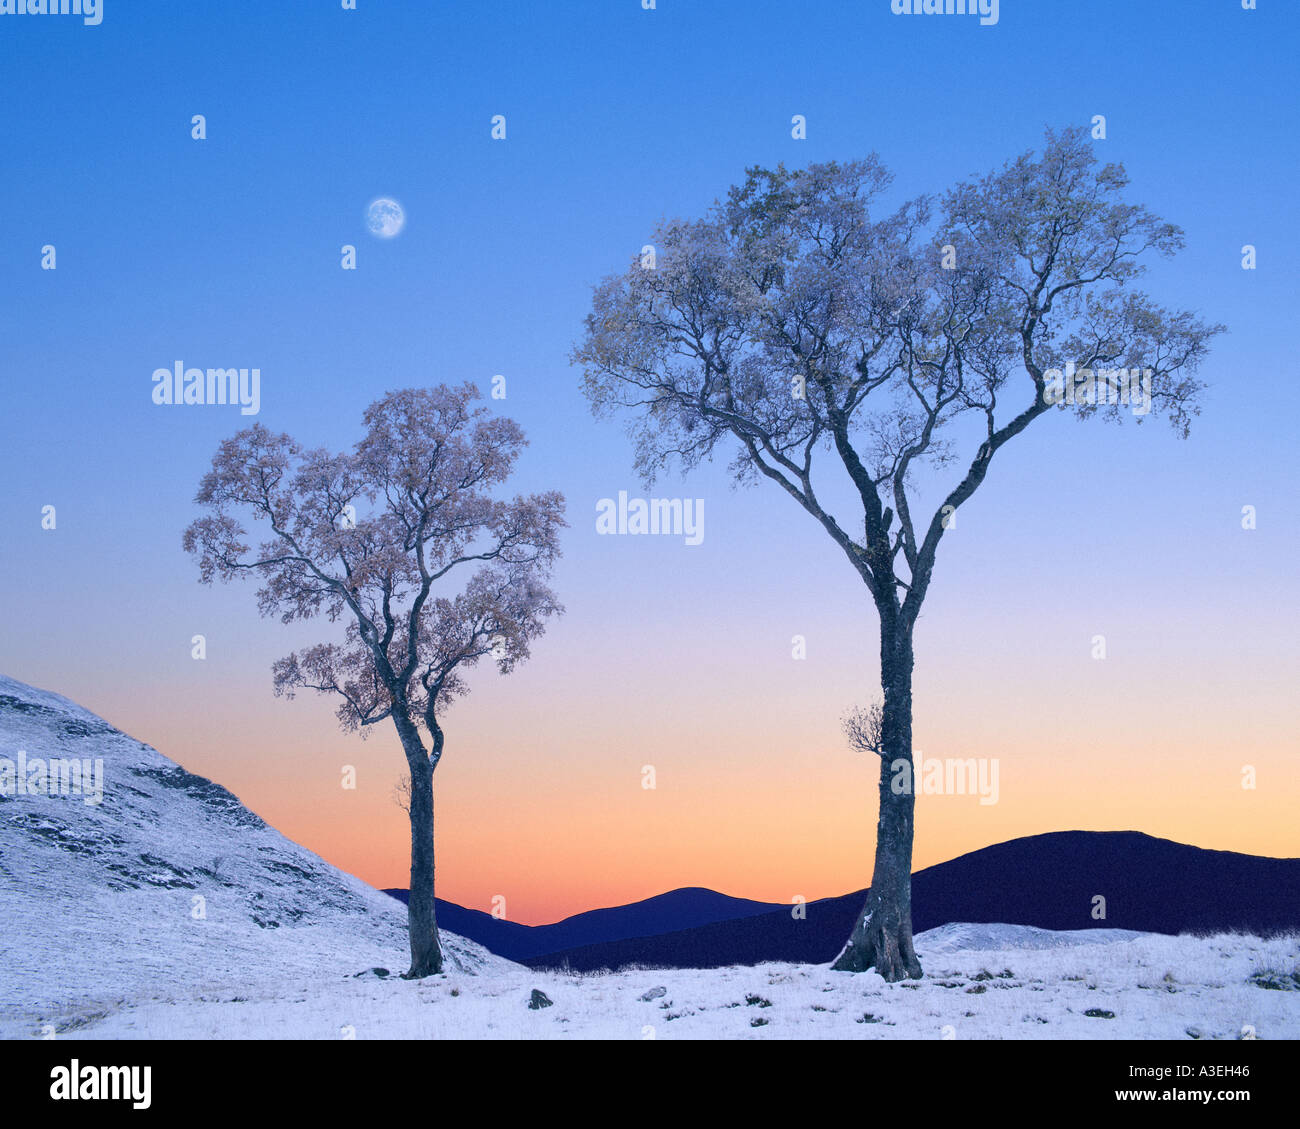 GB - SCOTLAND: Wintertime in Glen Lochsie - Stock Image